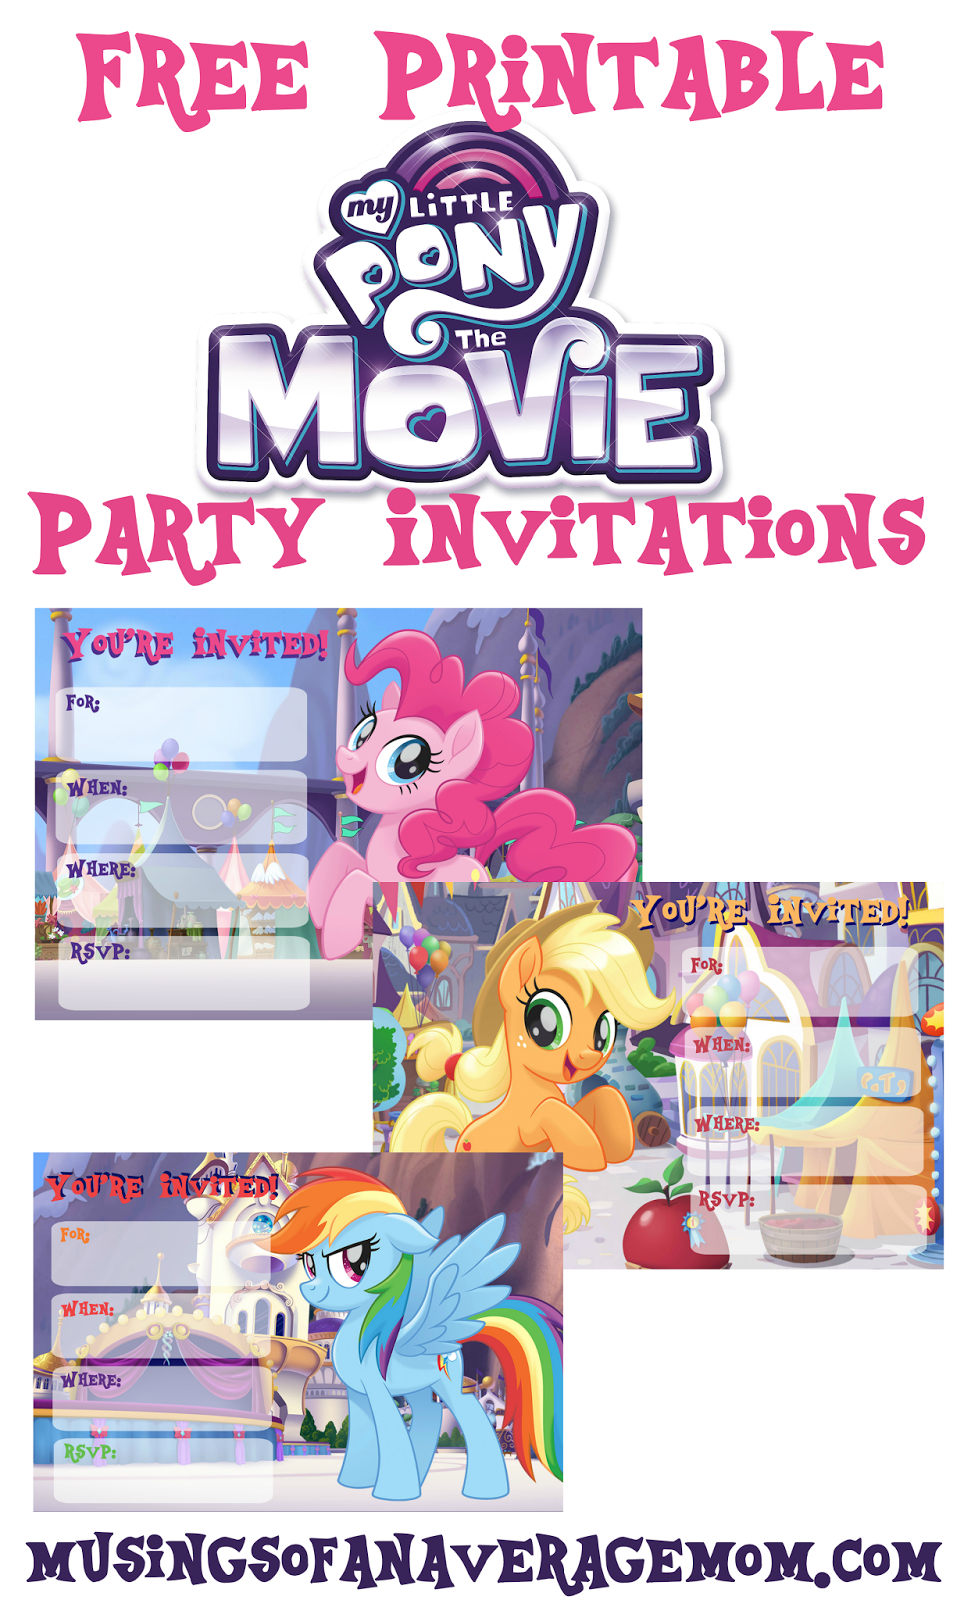 Musings Of An Average Mom: My Little Pony Movie Invitations - My Little Pony Free Printables